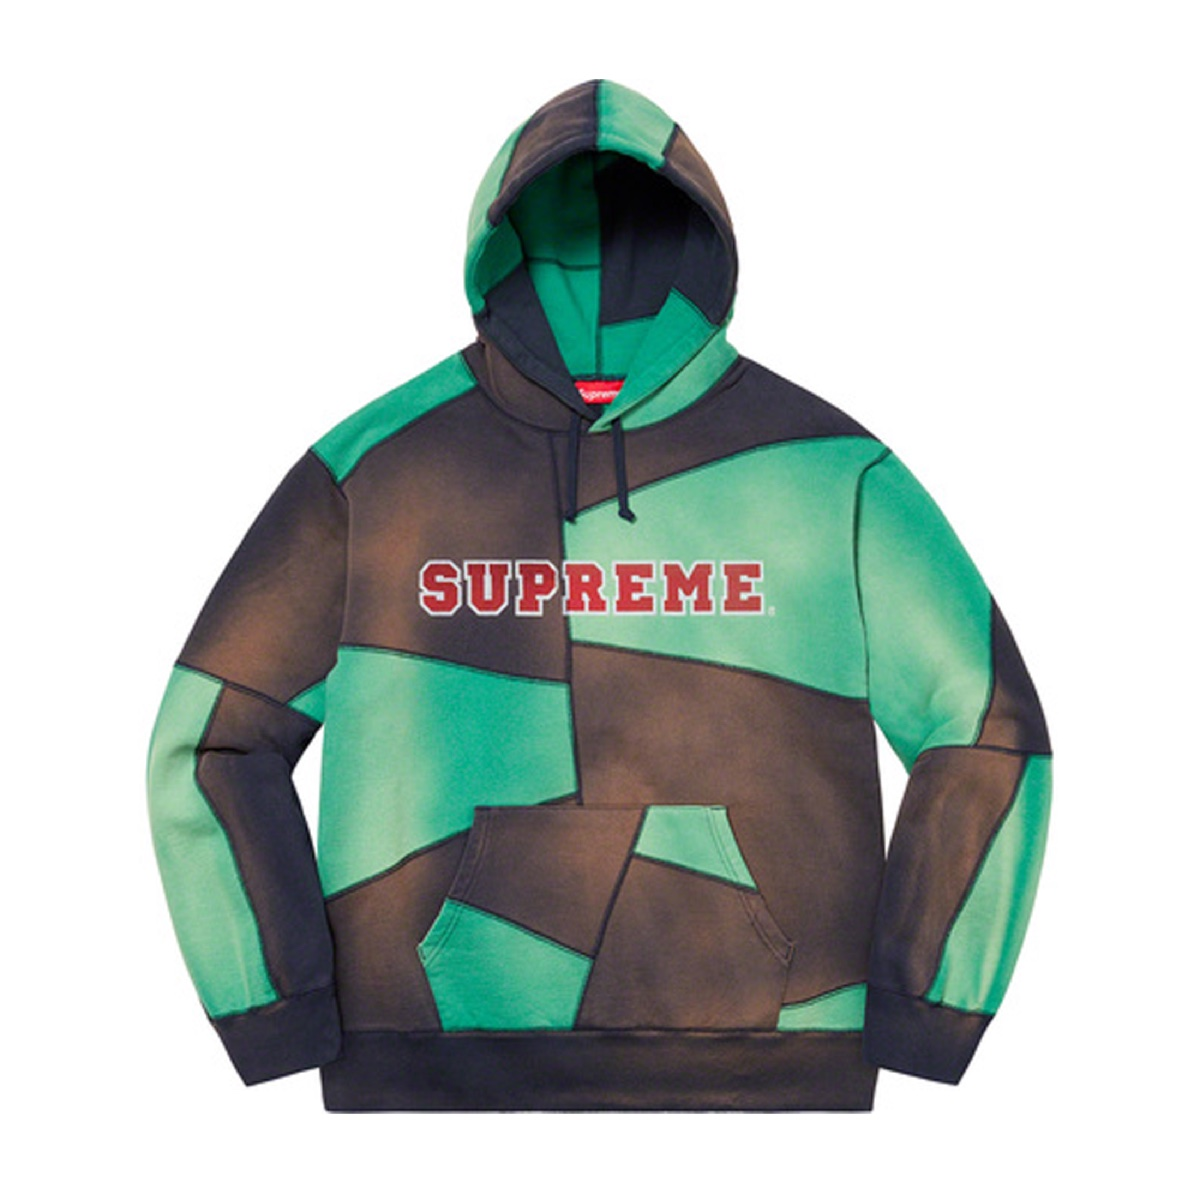 Supreme Patchwork Hooded Sweatshirt Navy